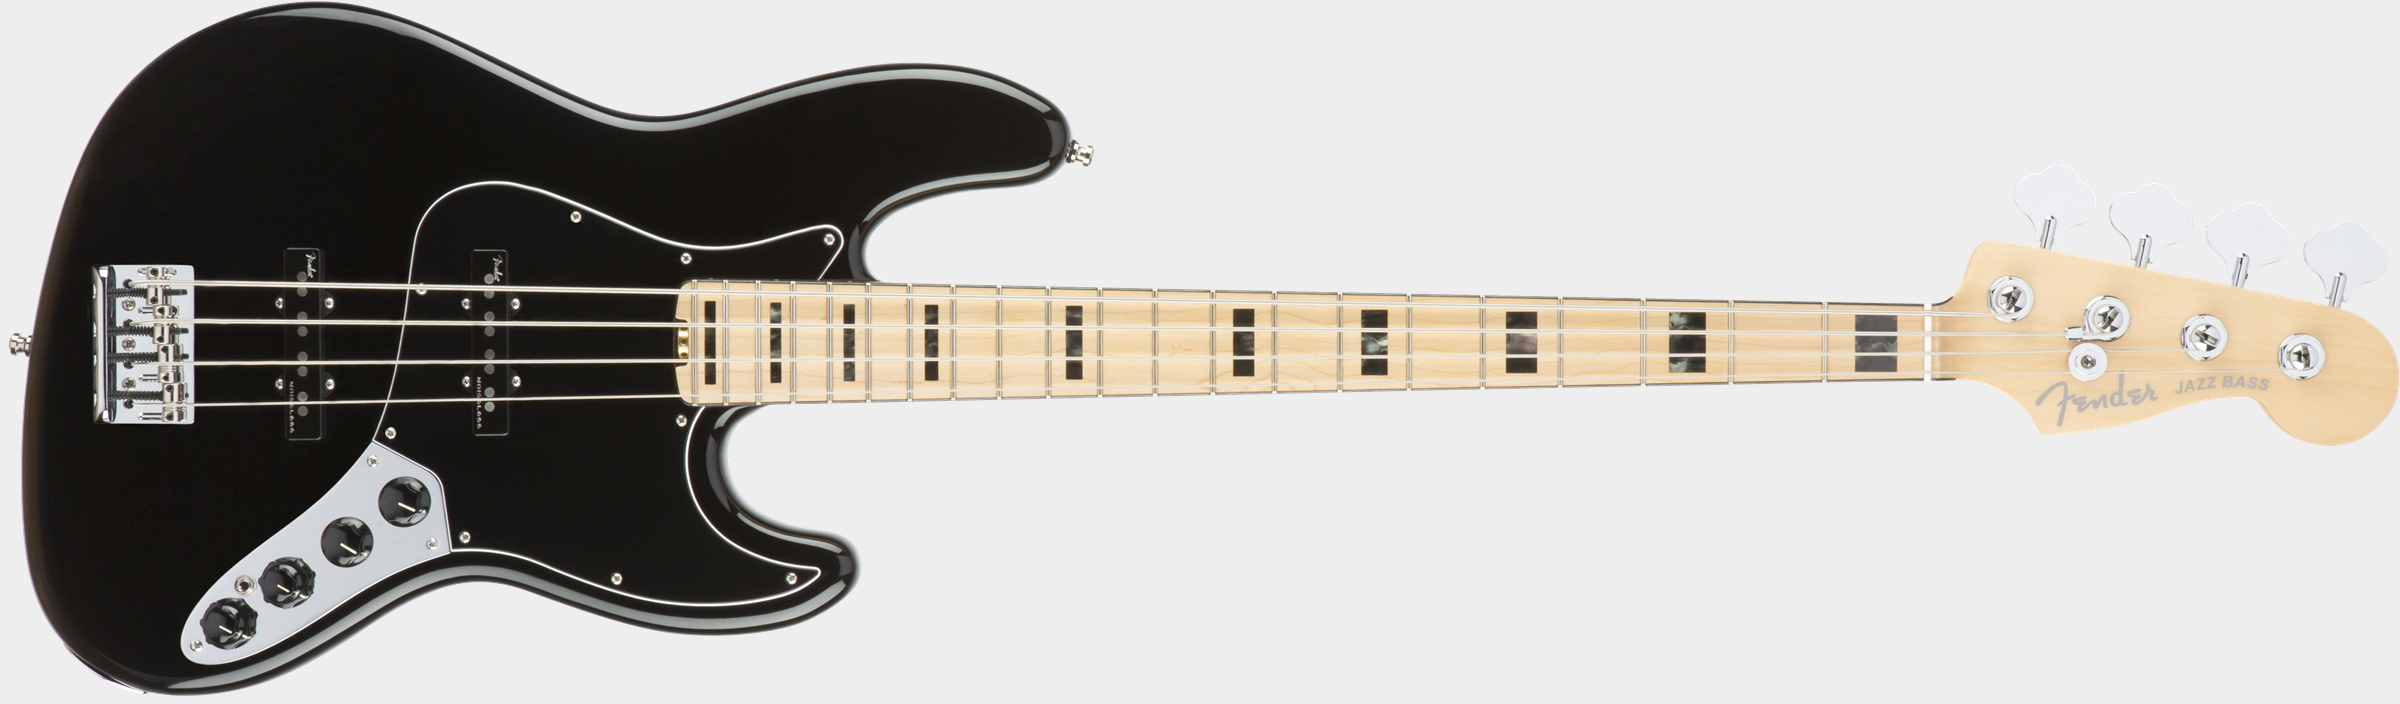 FENDER American Elite jazz Bass Black